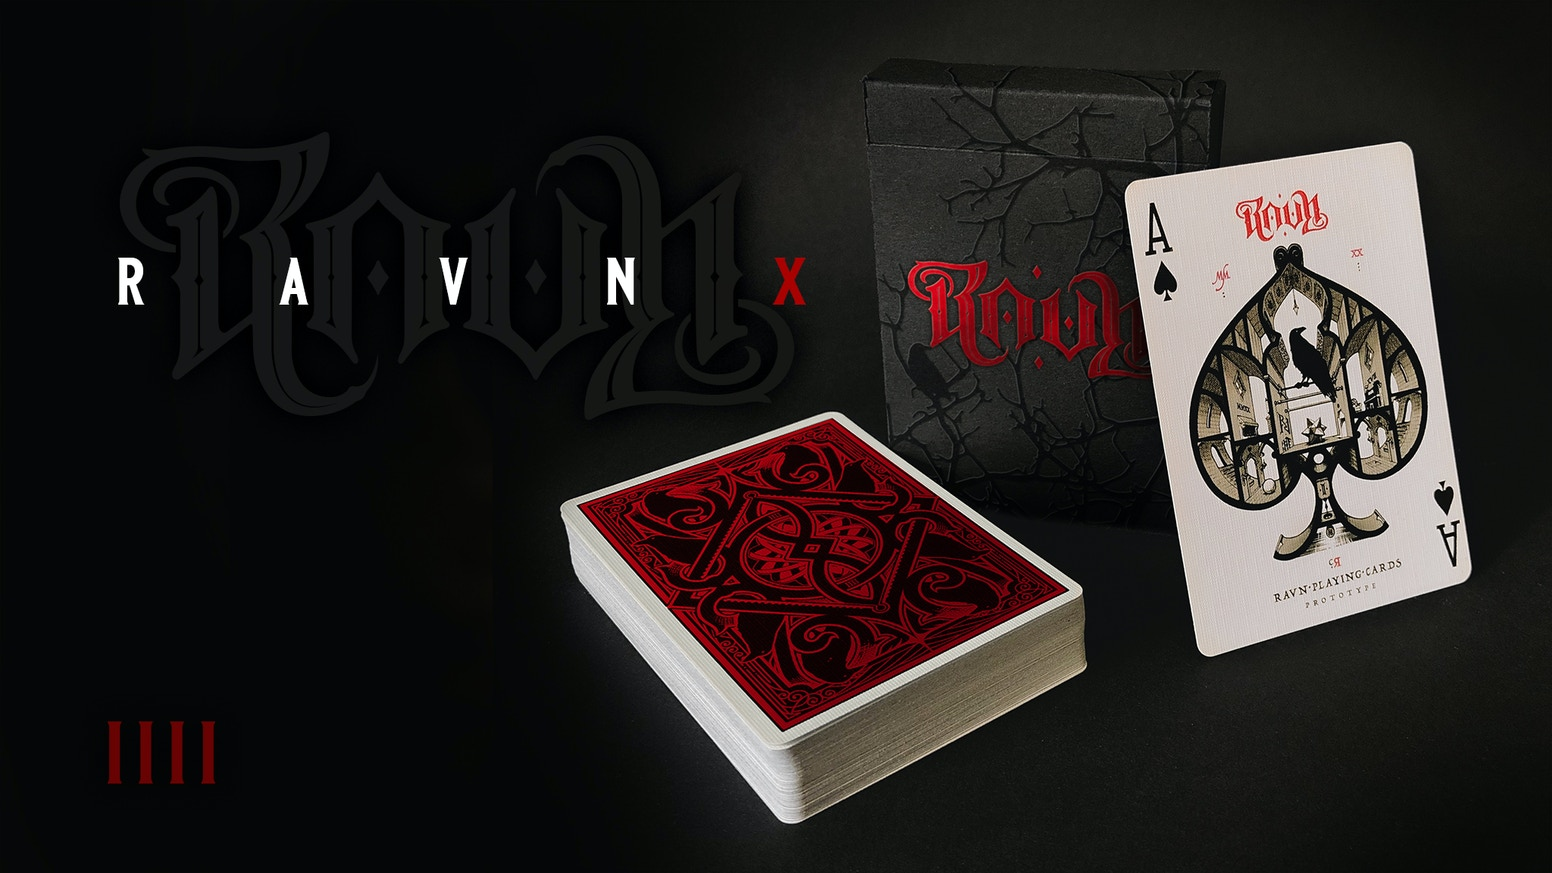 Ravn IIII Playing CardsPtinted by USPCC on Bicycle grade THIN CRUSHED™  paper stock.